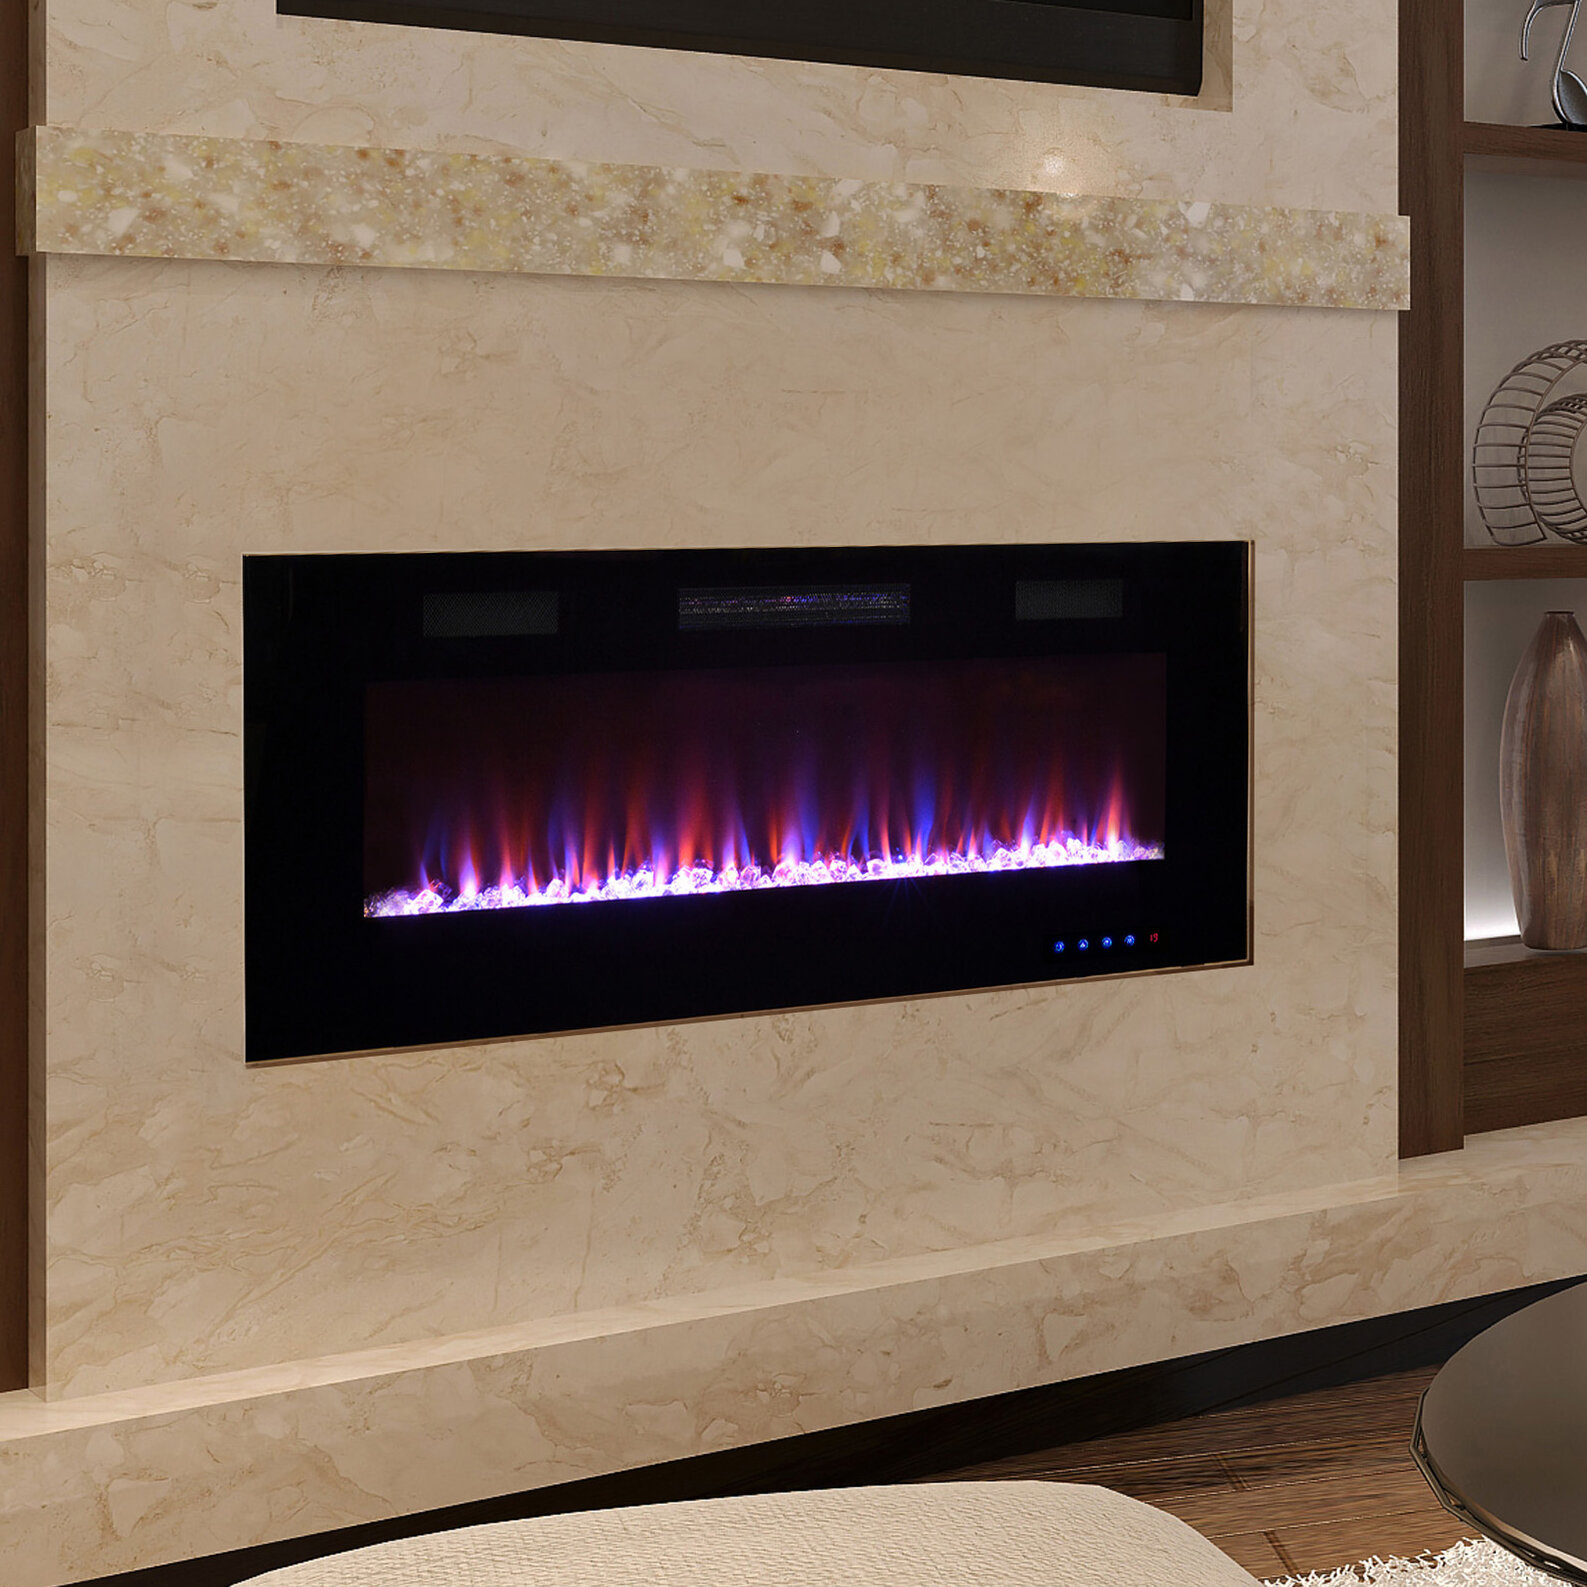 Pacific Heat Recessed Wall Mounted Electric Fireplace Reviews Wayfair